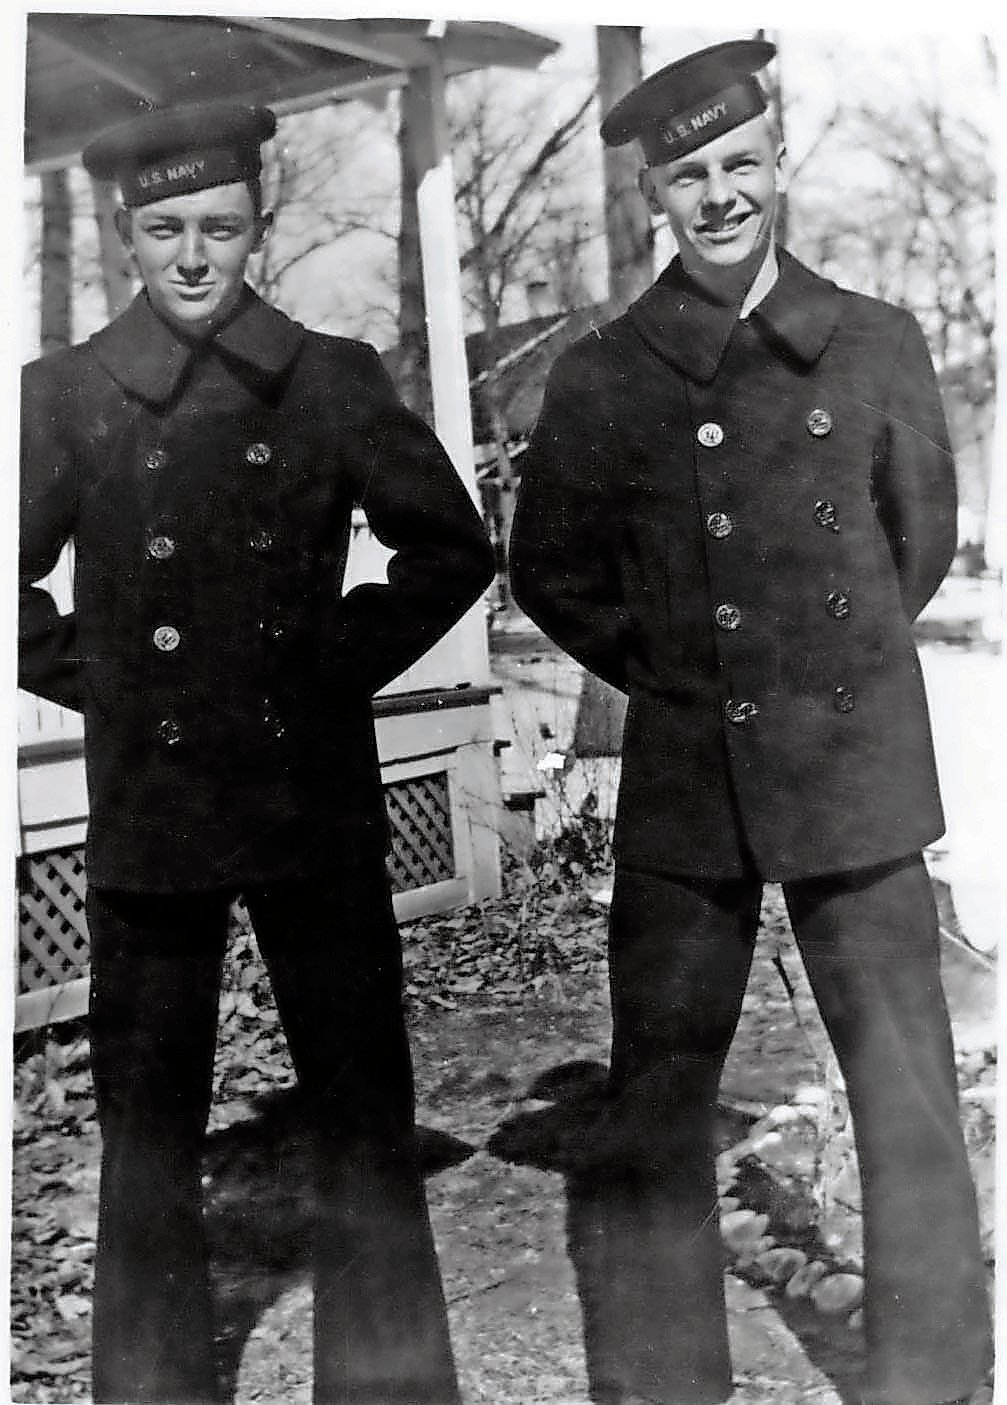 Jack Tilford, left, and his friend Albert Taylor, who lived in Bayville. They joined the Navy together.